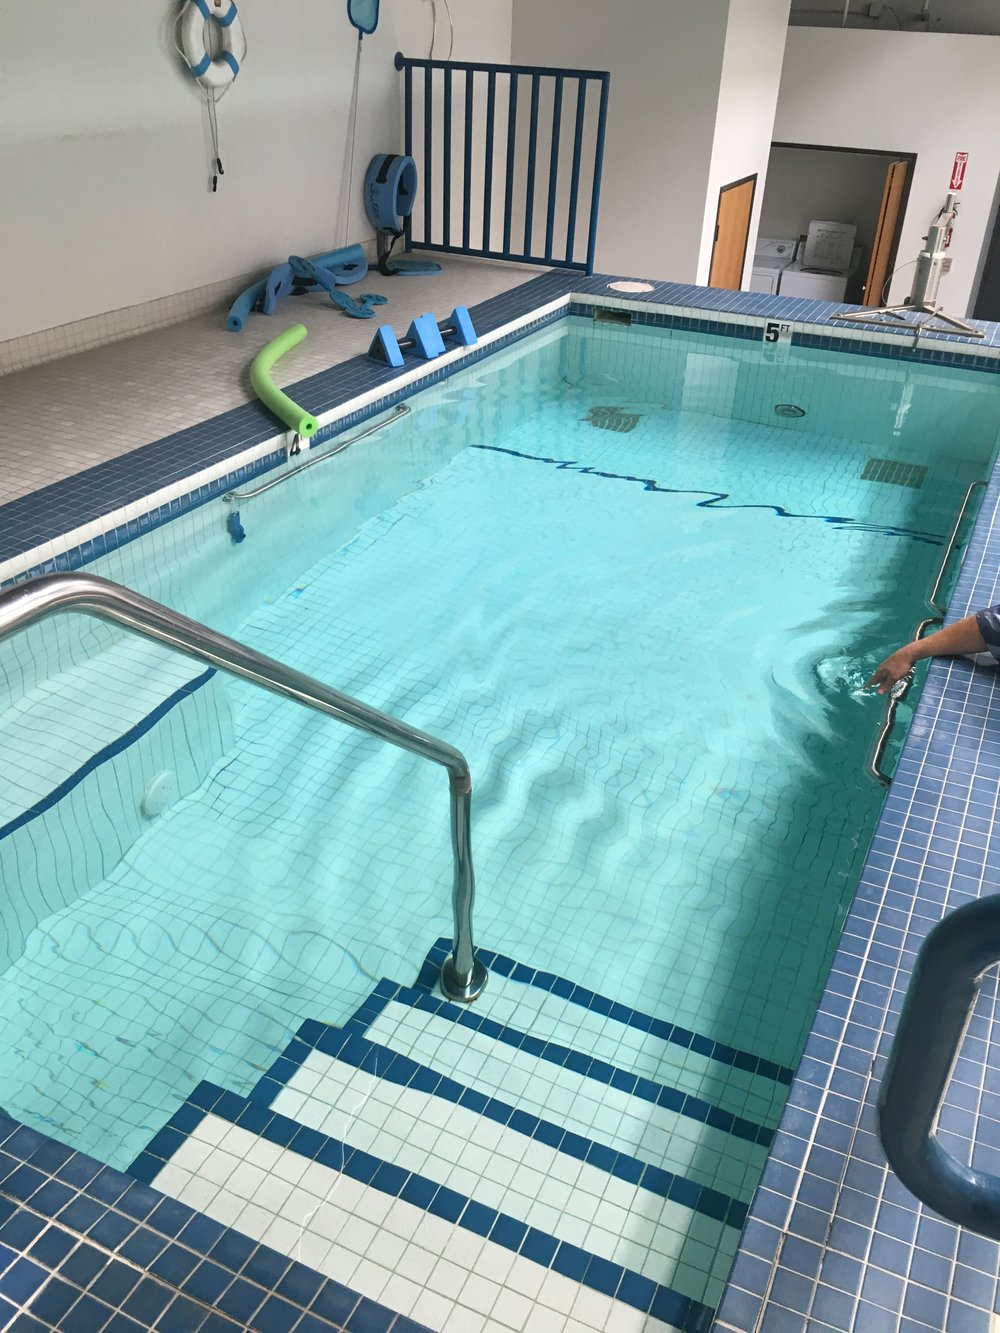 The indoor heated pool at our new home 10431 Commerce Street.